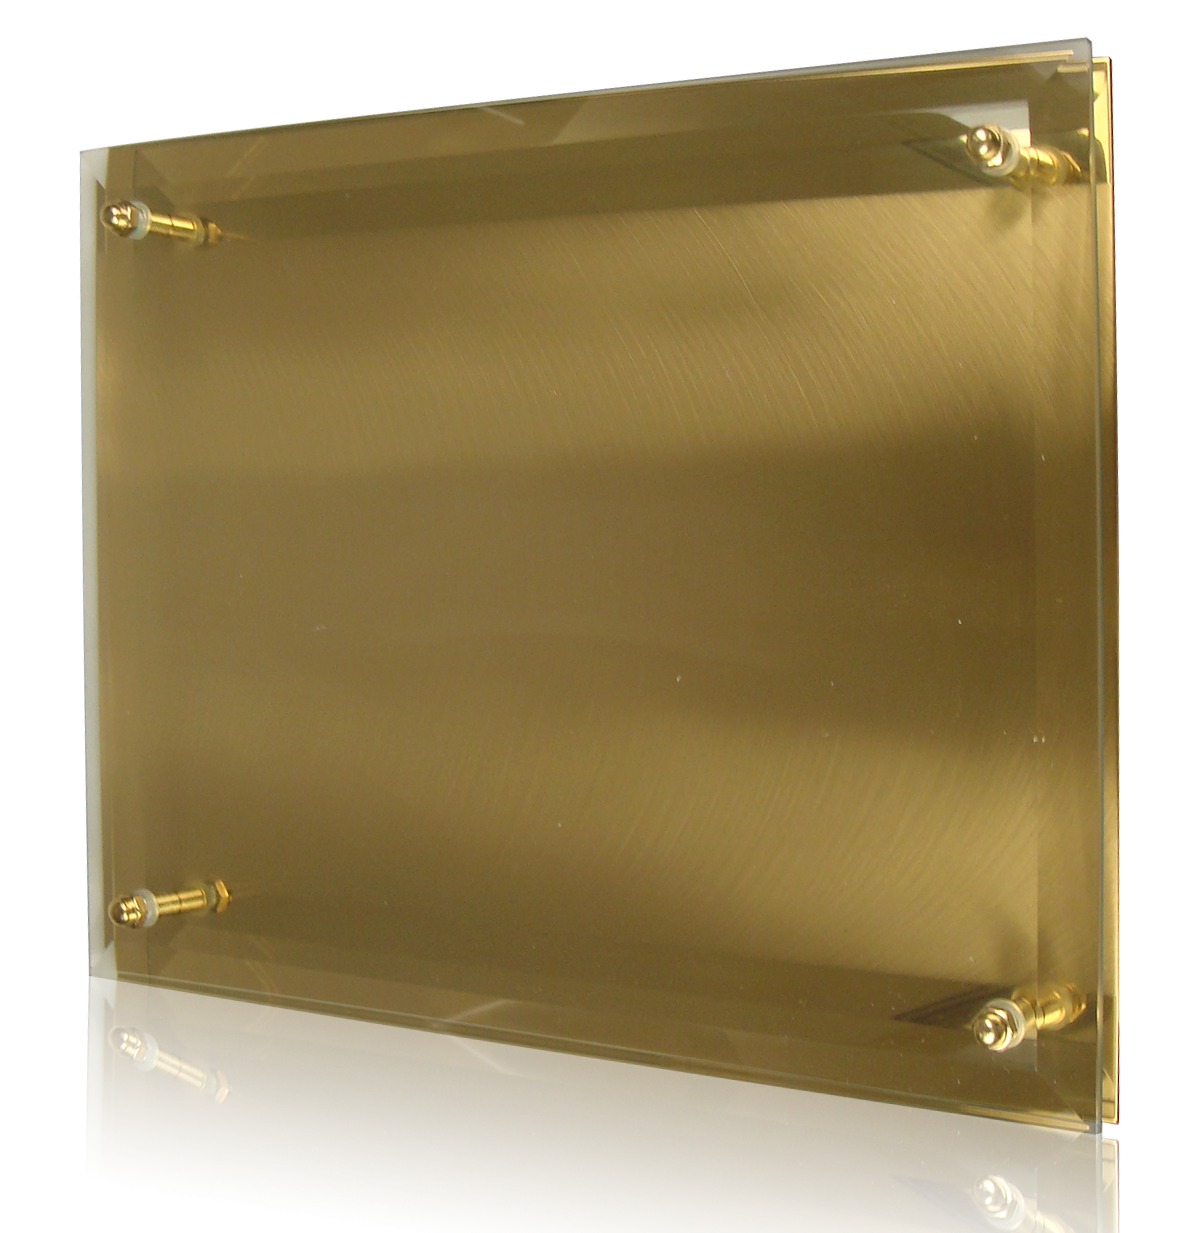 Personalize artful designs golden reflections plaque award society awards - Plaque ondulee polycarbonate transparent ...